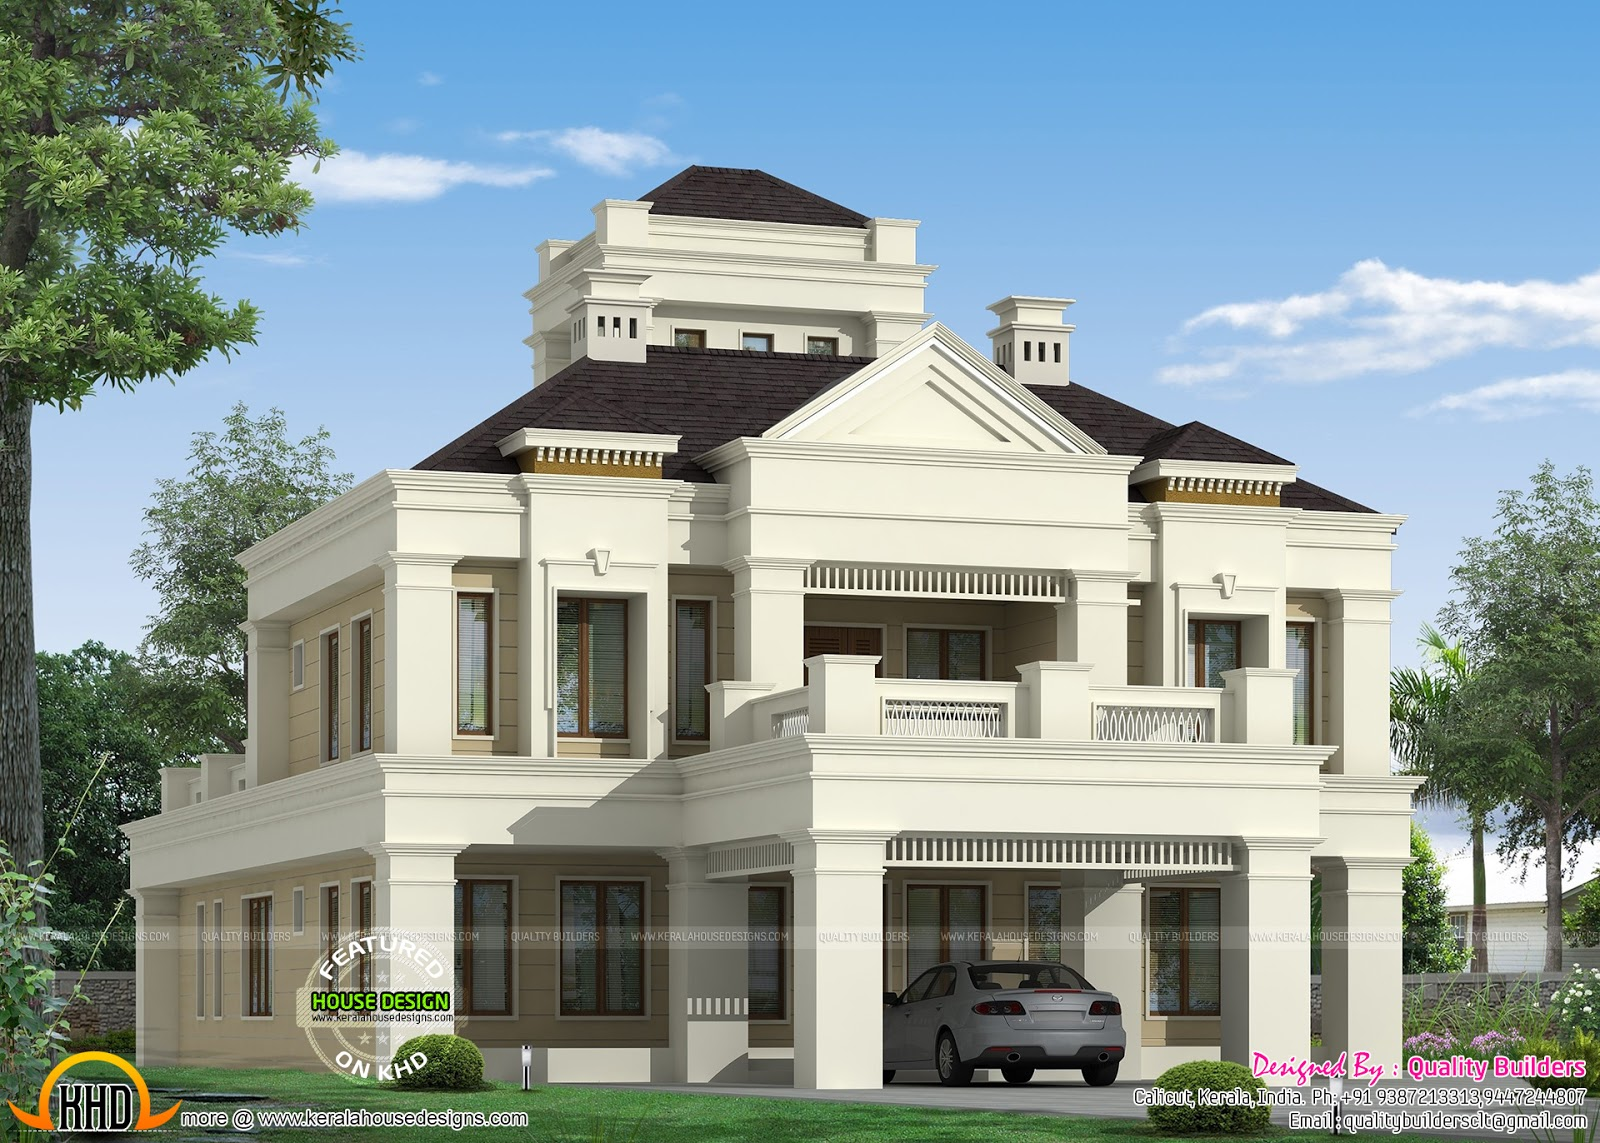 Kerala home design and floor plans colonial style home for House plans colonial style homes